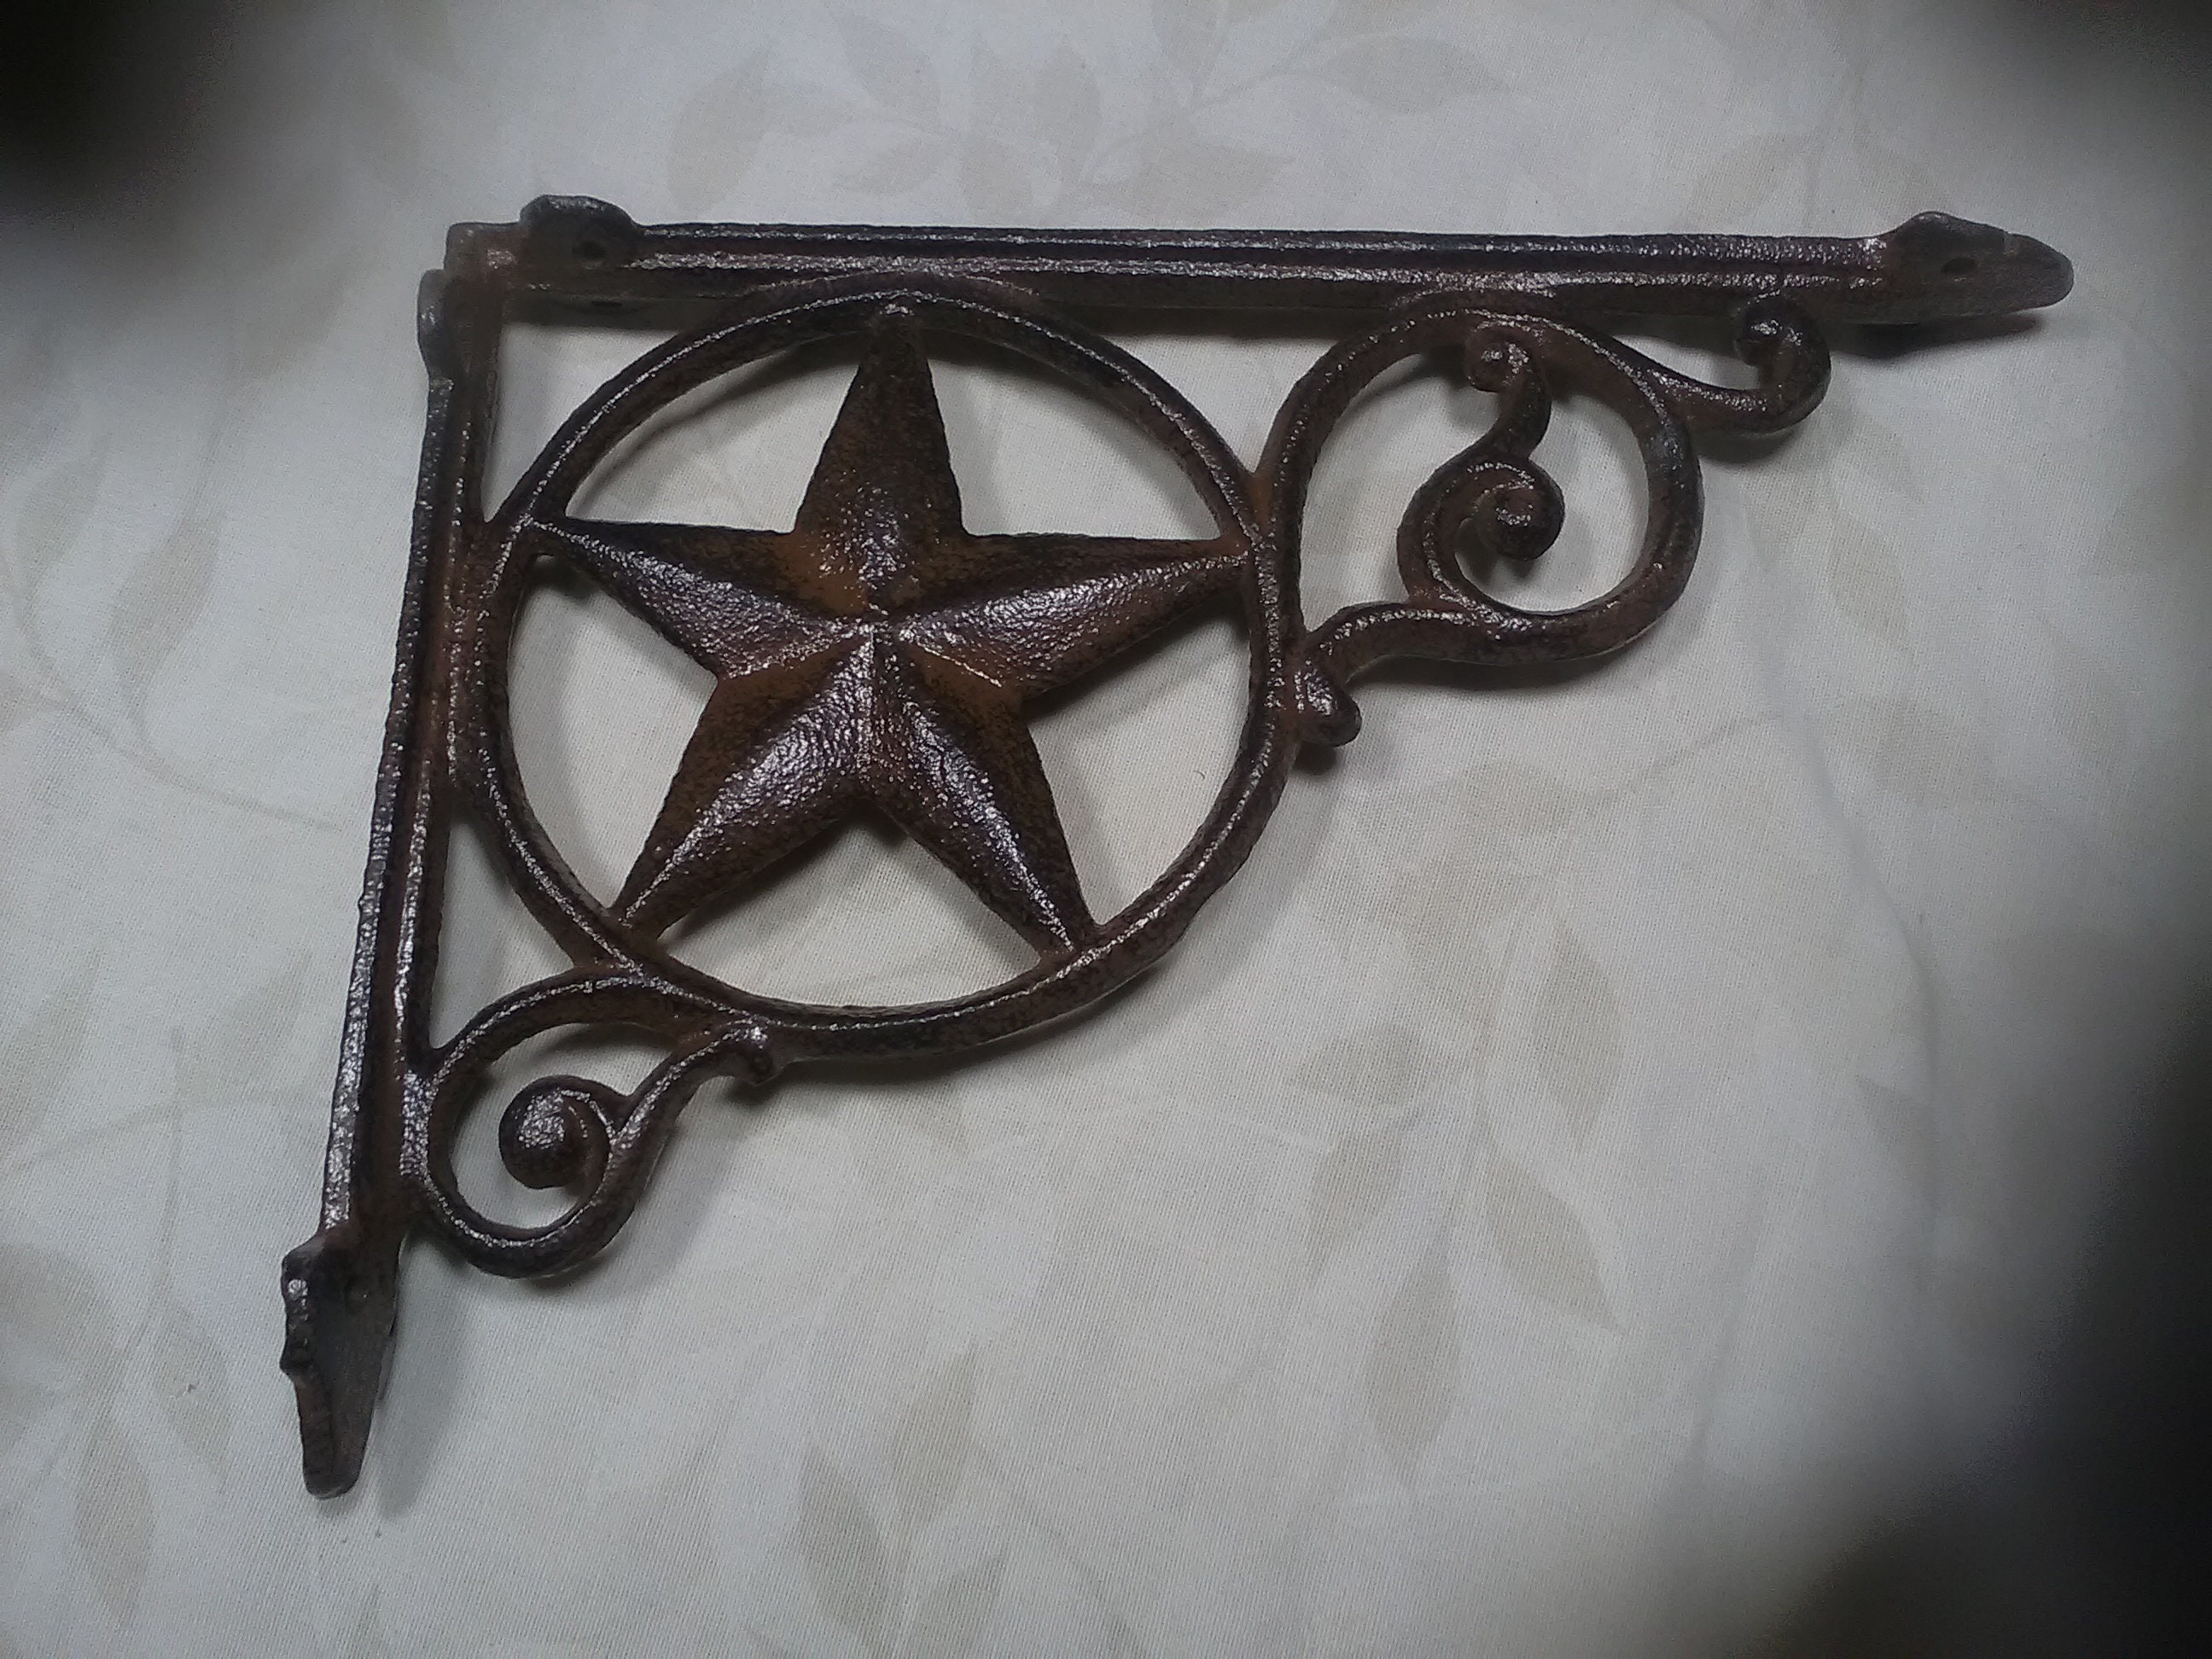 Antique Curtain Rods 2 Western Star Shelf Brackets Corbel Cast Iron Rustic Decor Antique Look Bracket Antiques Whynot Com Mk